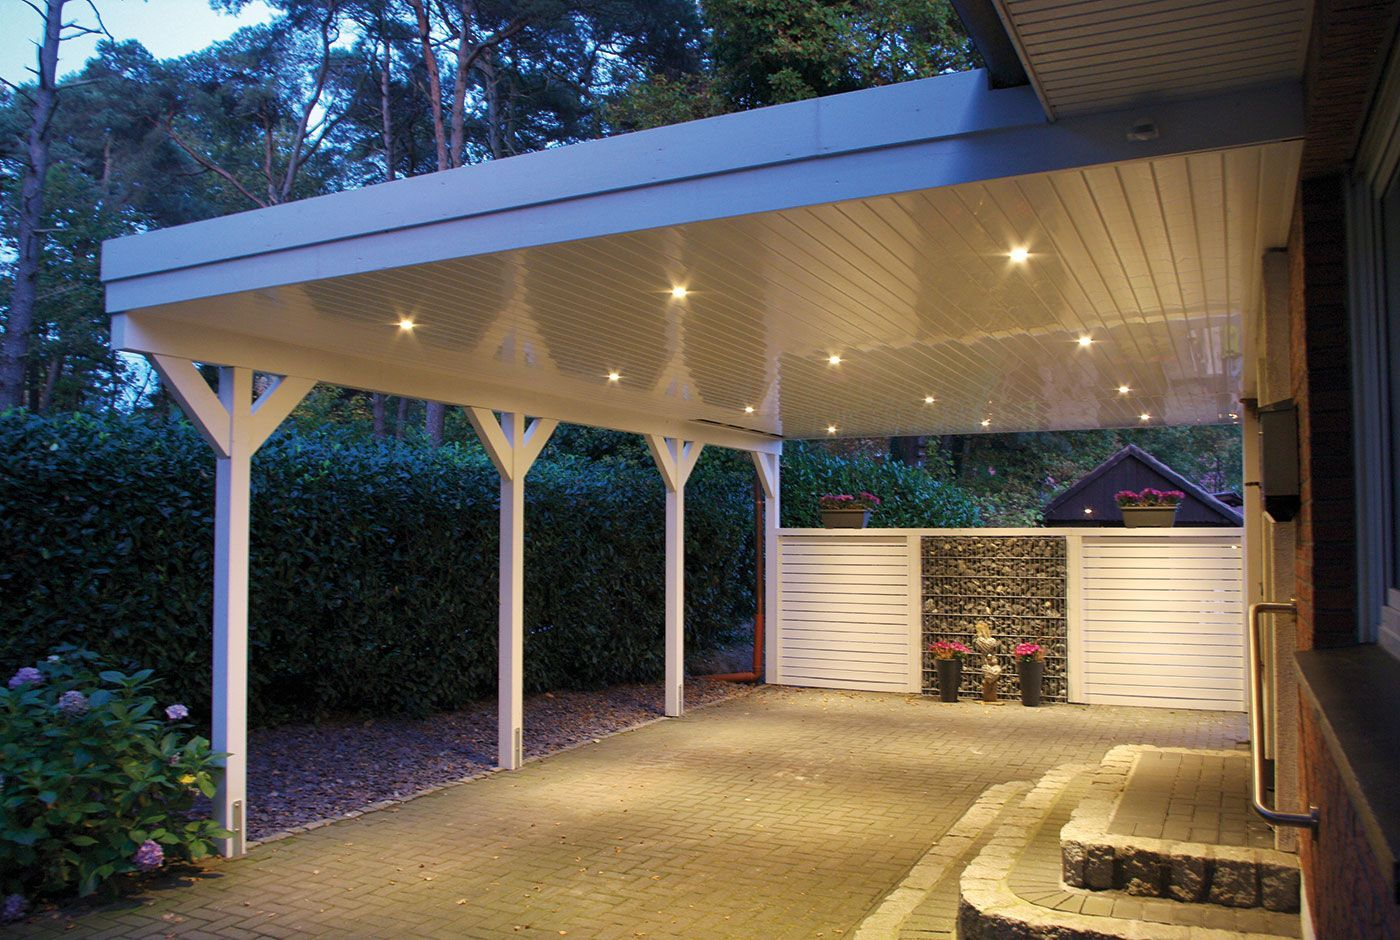 Garten Design Online Shop Online Shop Steda Glas Gartendesign Car Port In 2019